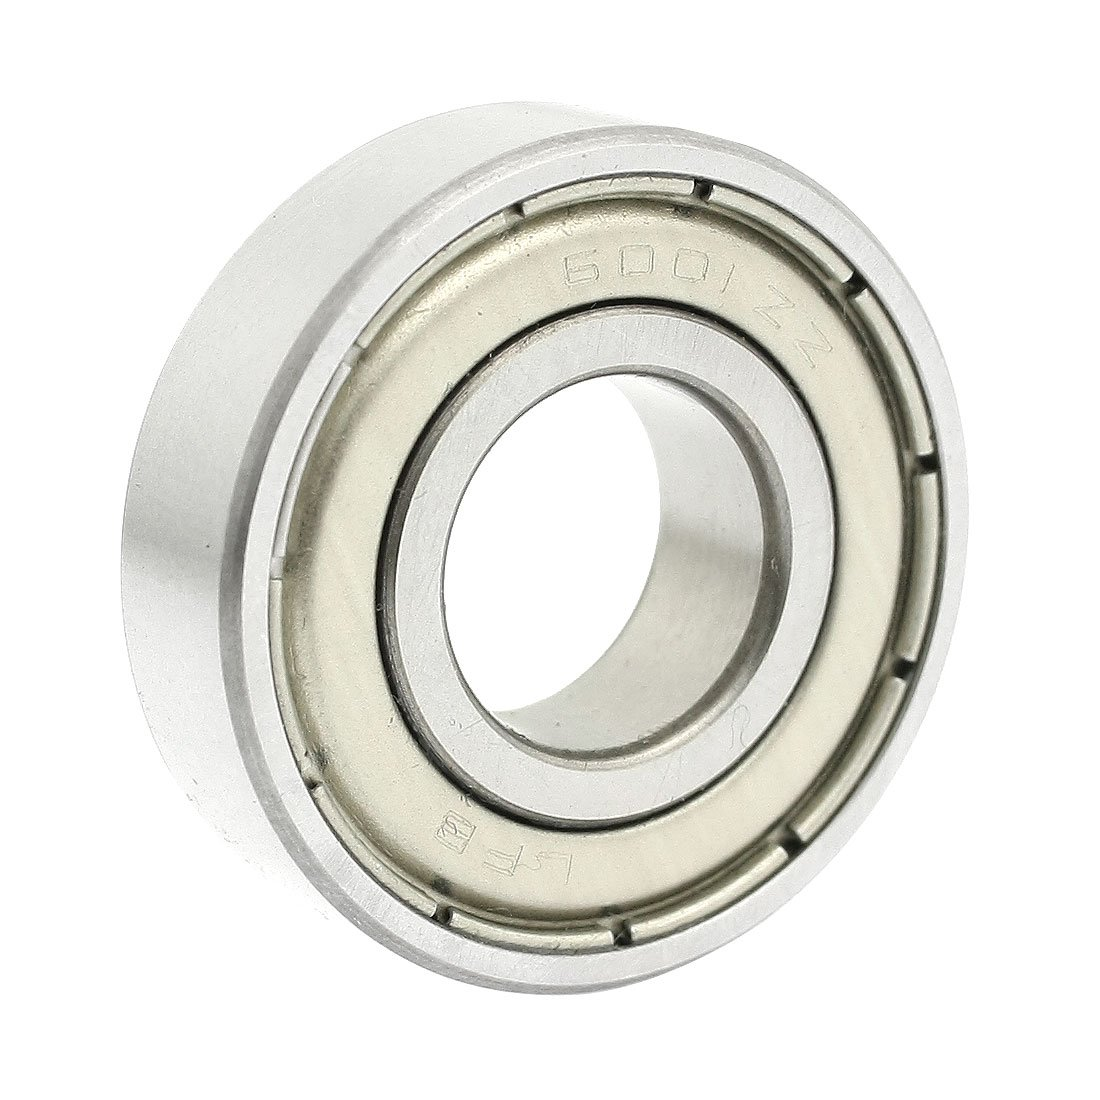 Wholesales 6001ZZ Double Shielded Deep Groove <font><b>Ball</b></font> <font><b>Bearings</b></font> <font><b>28mm</b></font> x 12mm x 8mm image